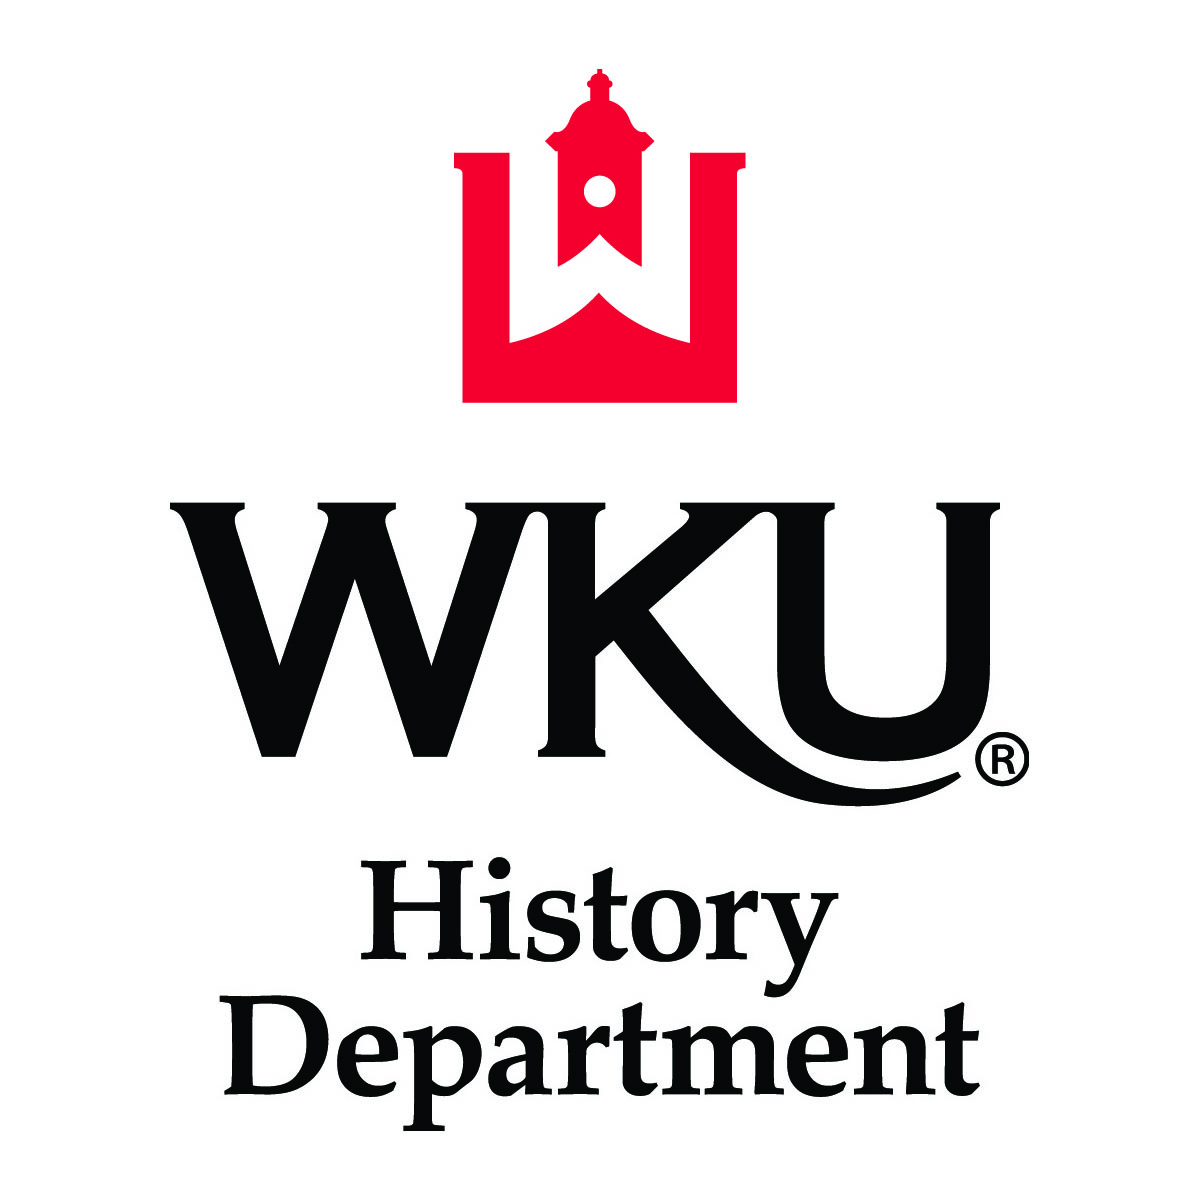 WKU History Department